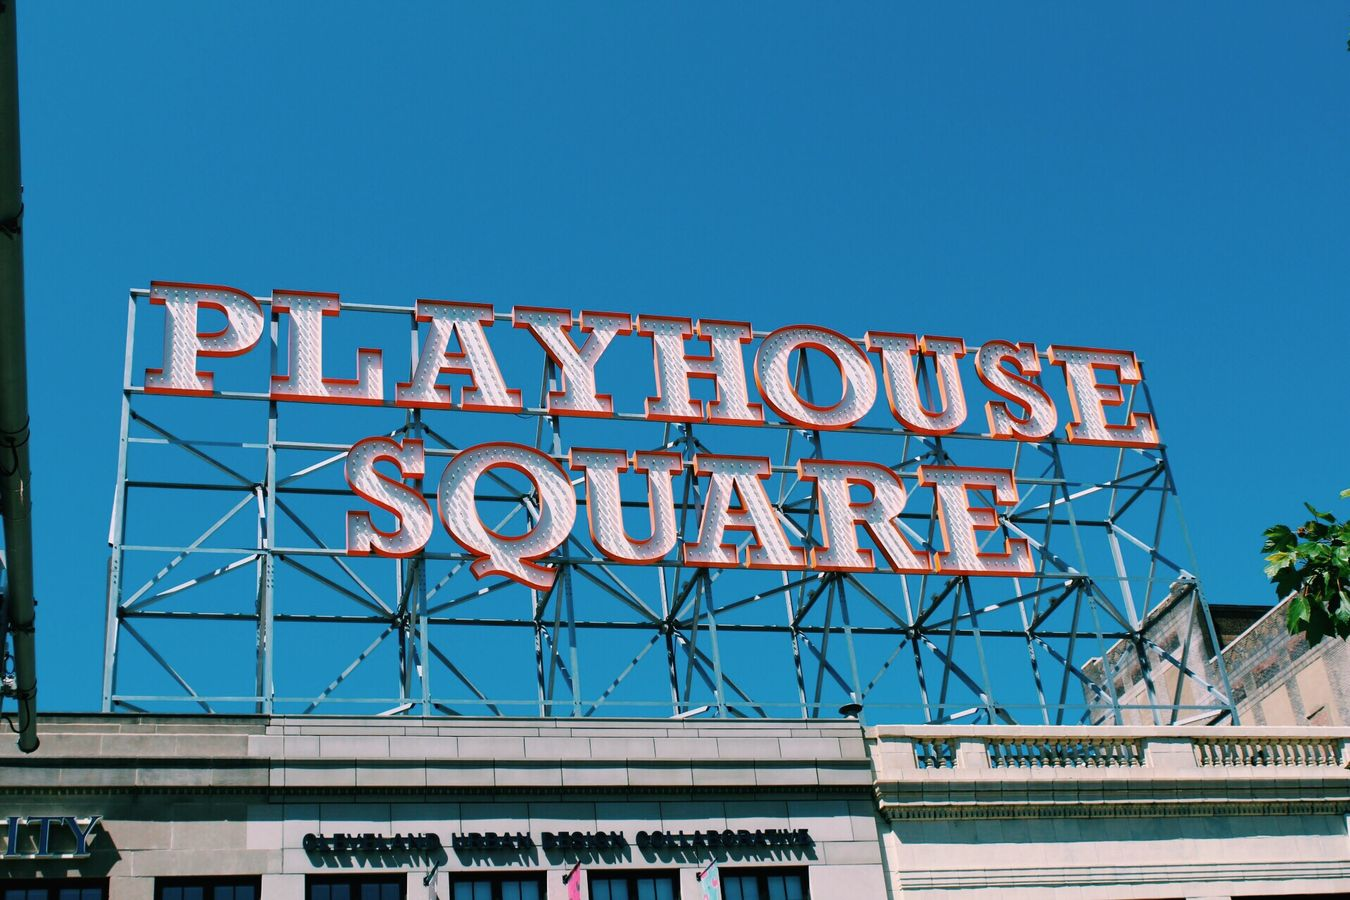 Playhousesquare Playhouse Square